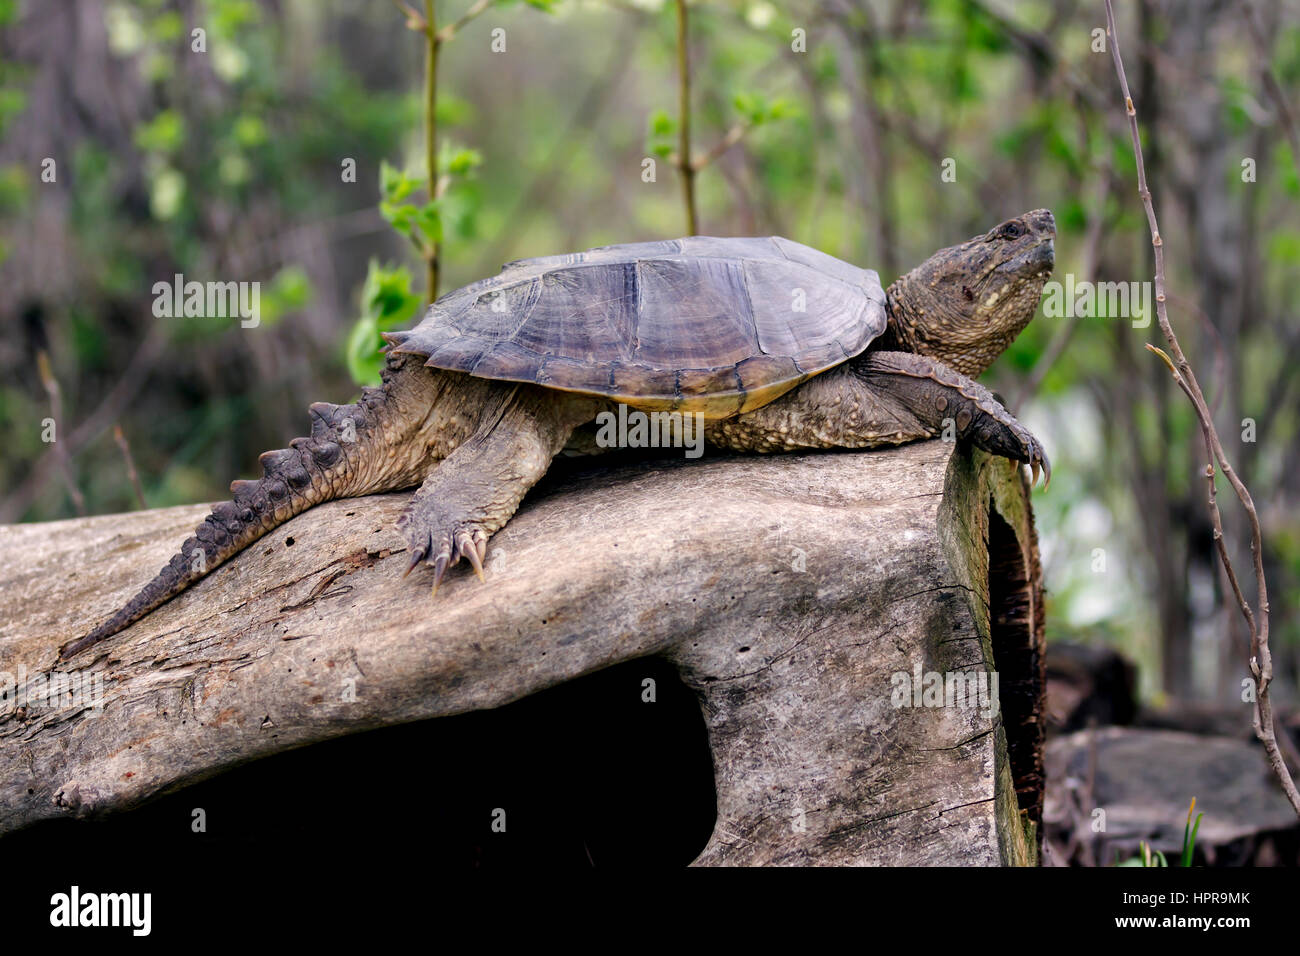 Captured this common snapping turtle basking in the sun sitting on a log. The back of my property touches the North Stock Photo